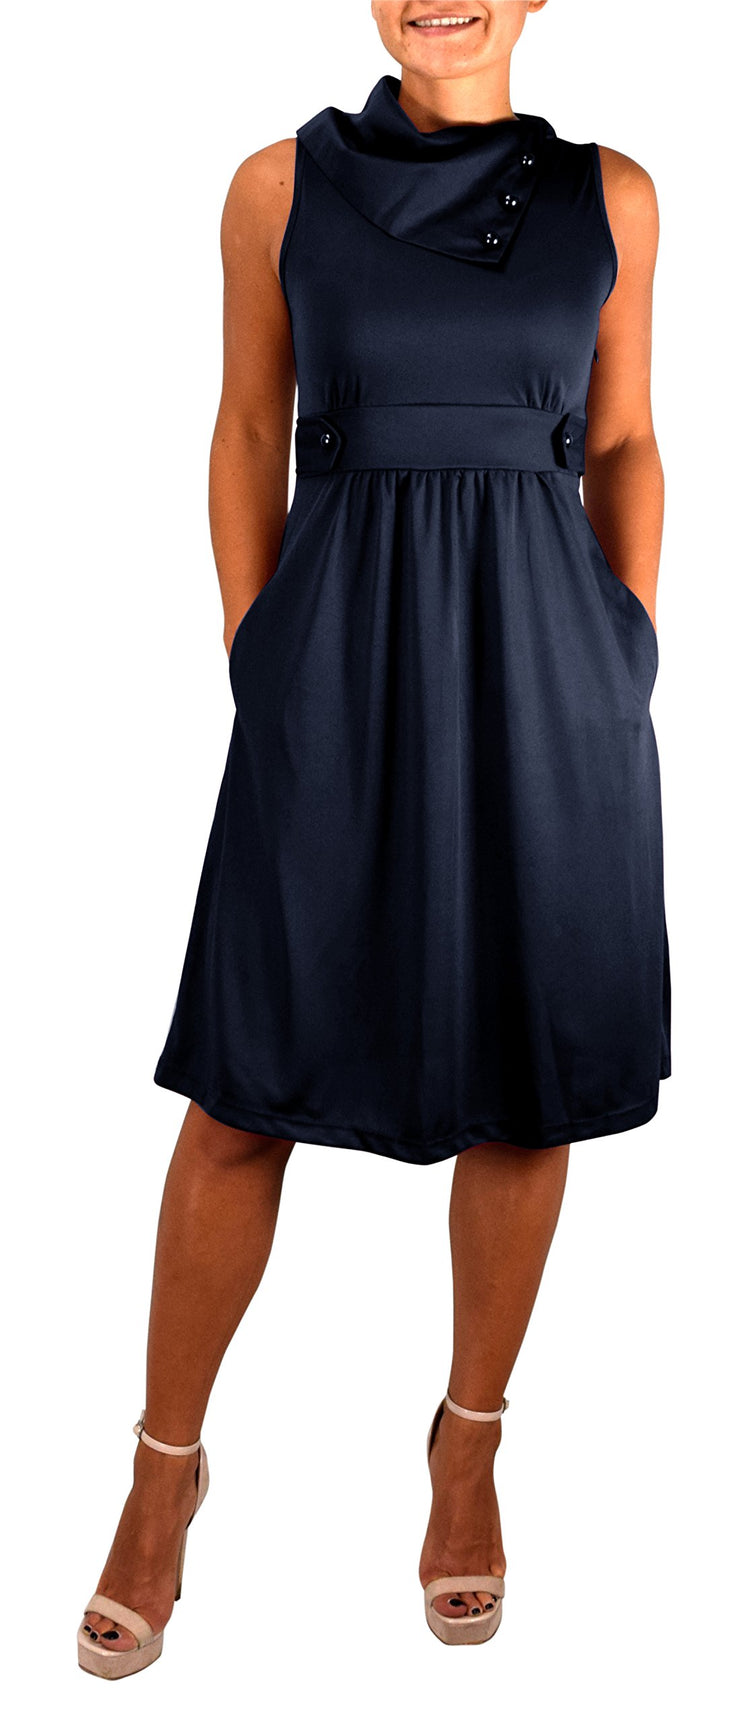 B4066-Foldover-Collar-Dress-Navy-XS-SD